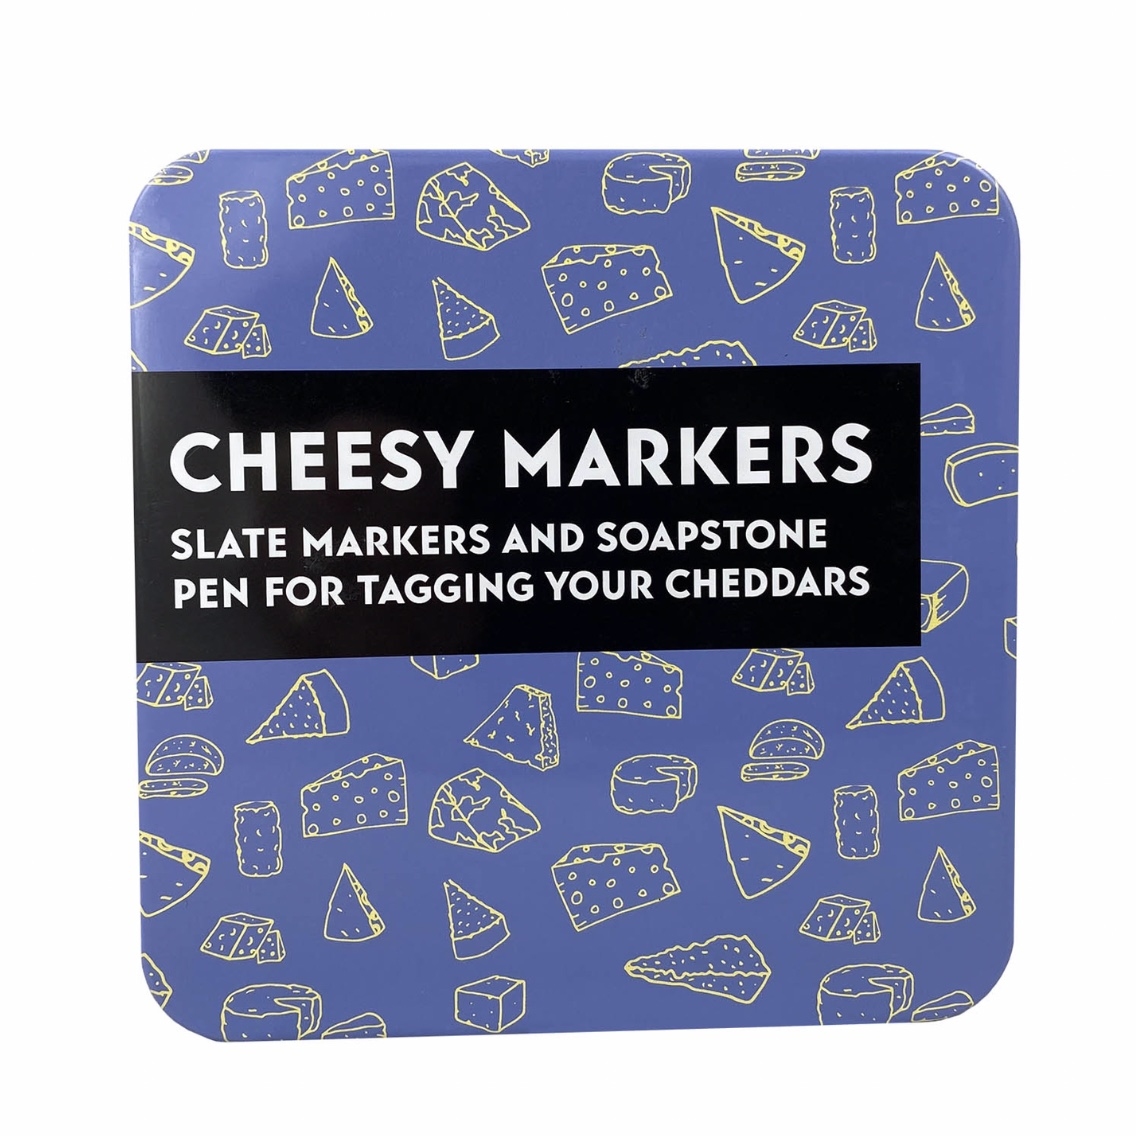 'Cheesy Markers' Gift in a Tin